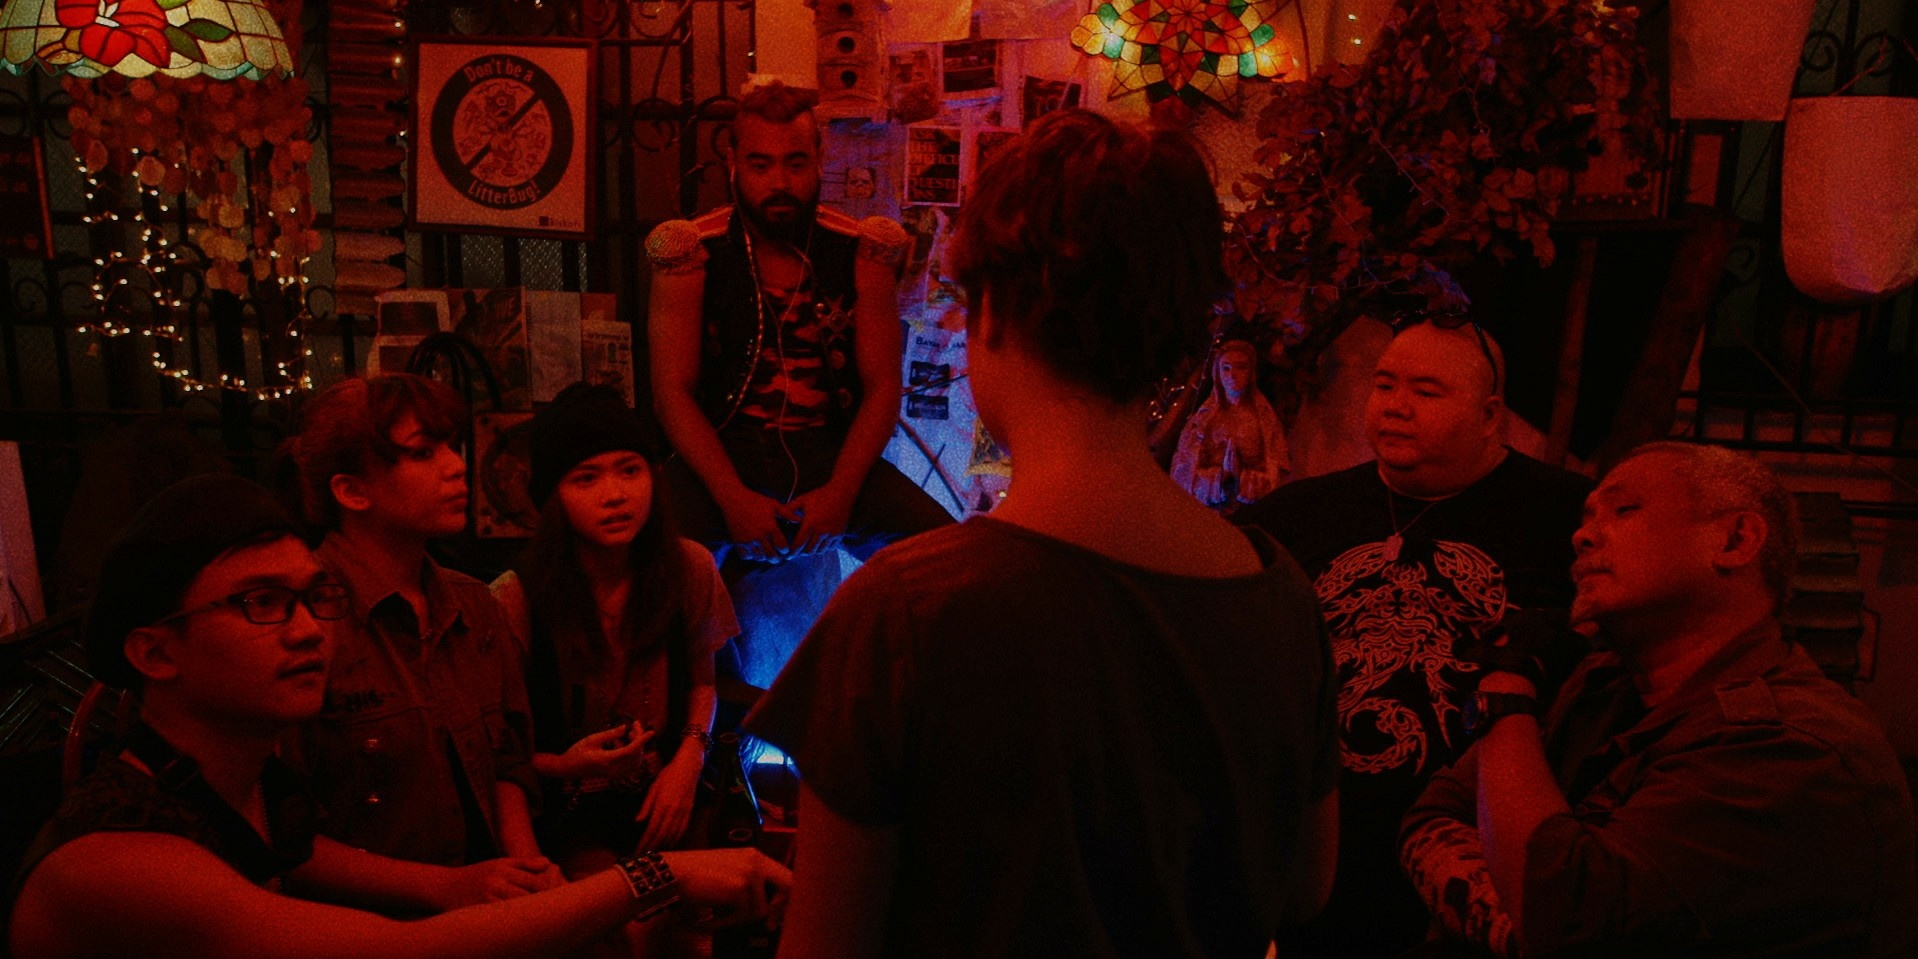 Flying Ipis featured in Vimeo Staff Pick short film Manila Death Squad